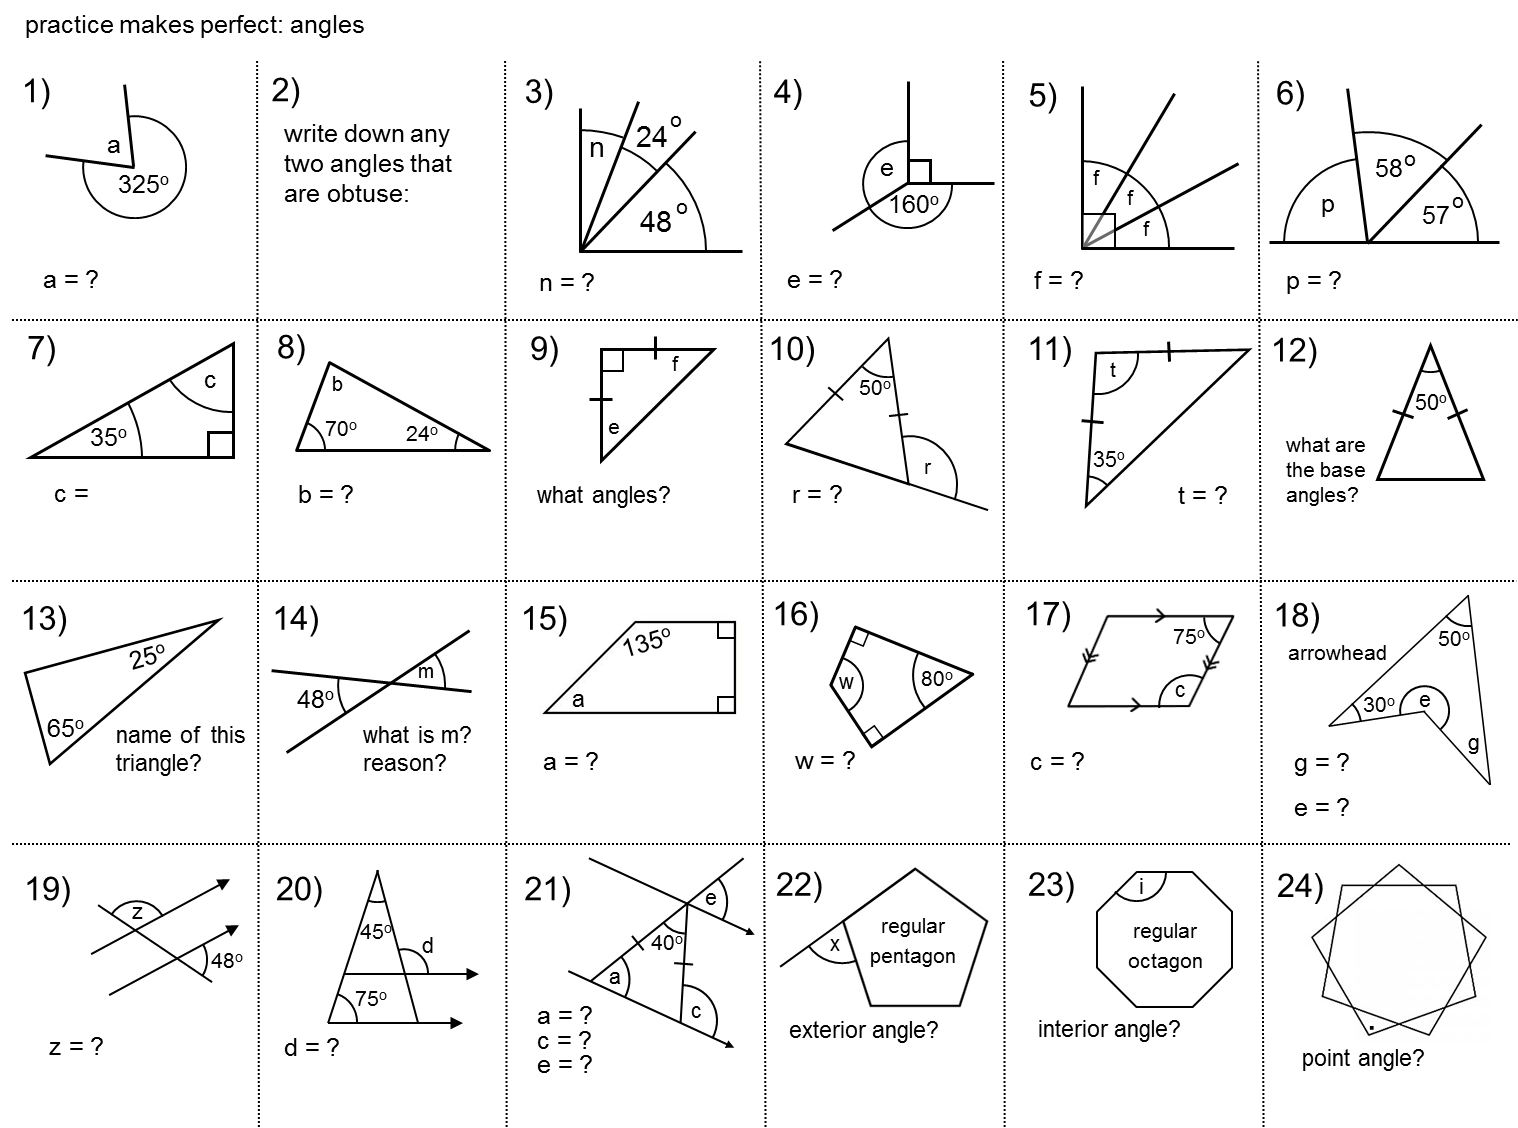 Median don steward secondary. Geometry clipart math protractor